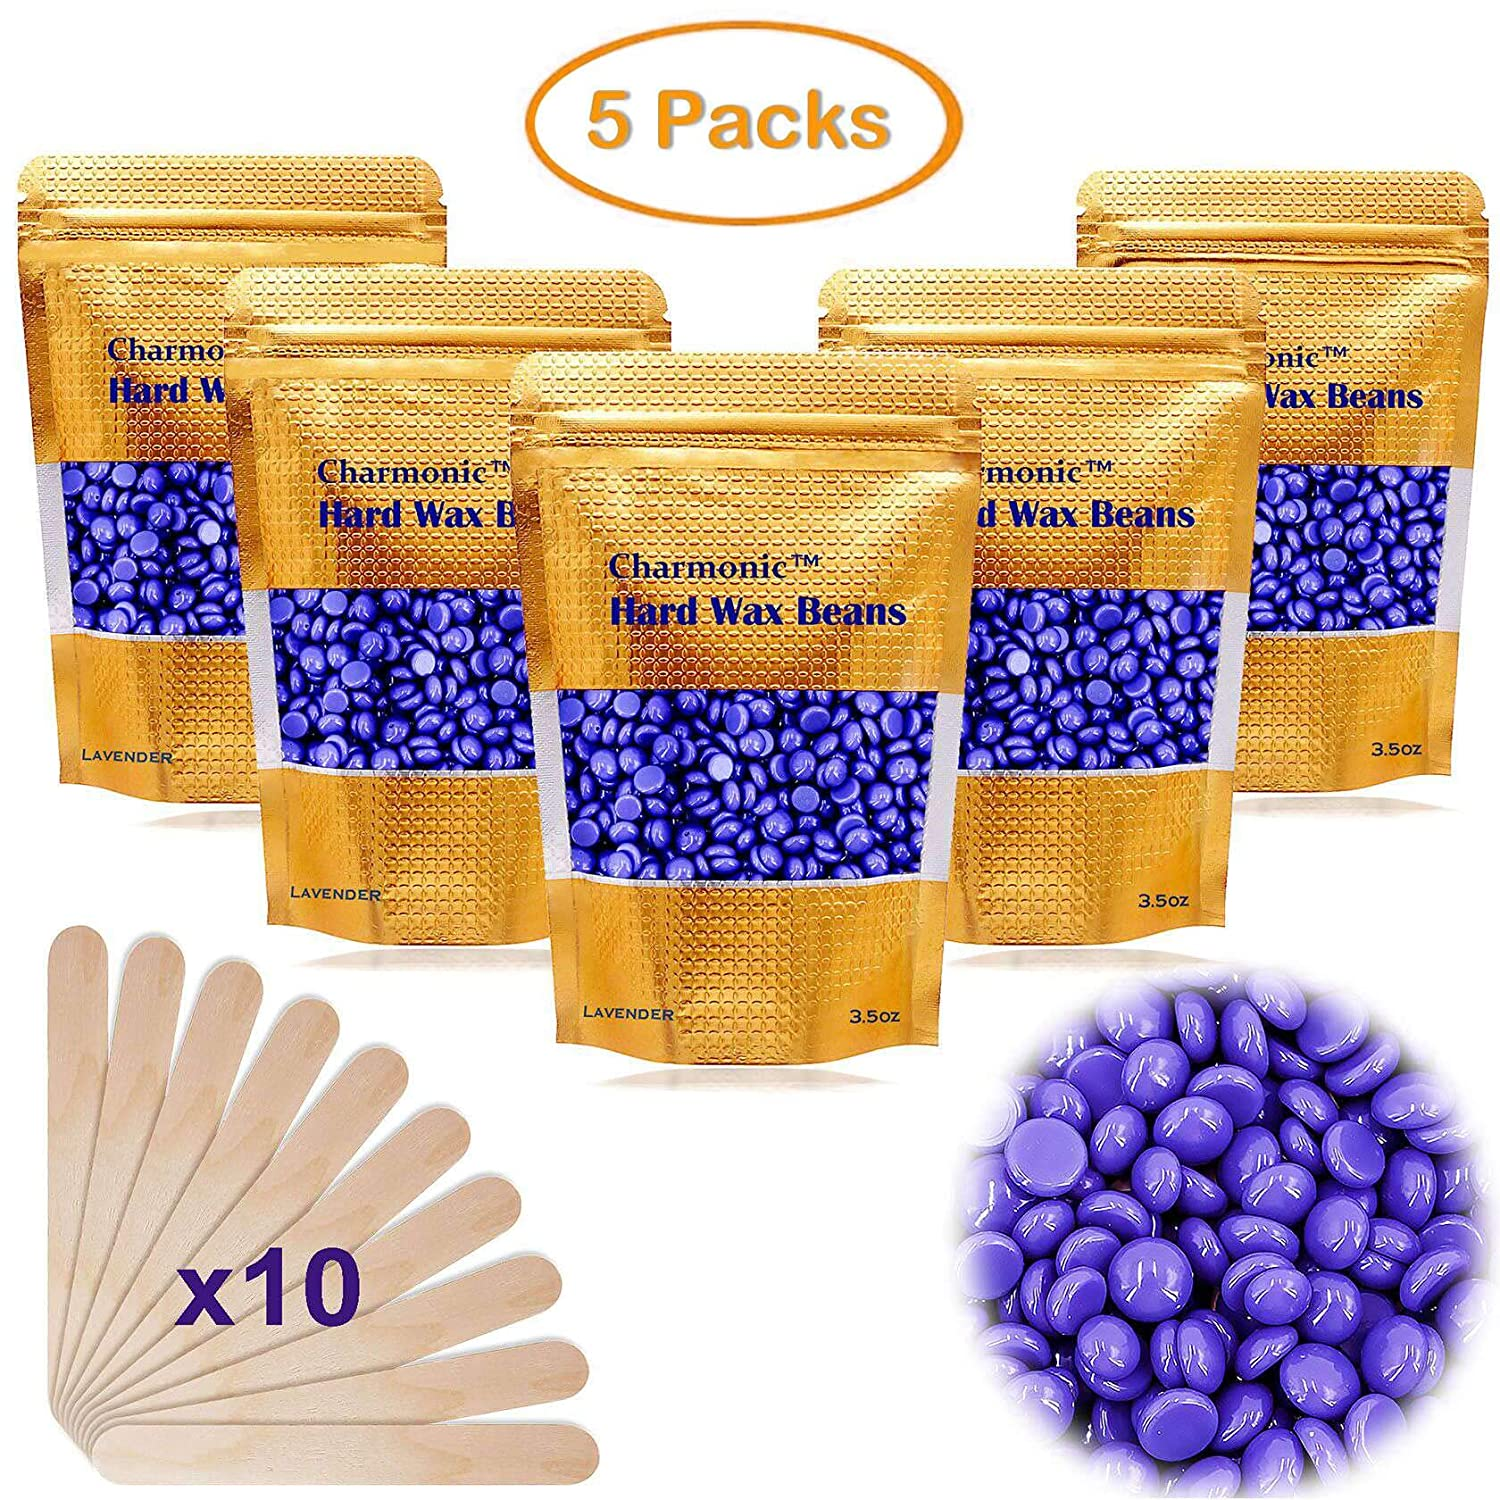 17.5 Oz Hair Wax Beans by Charmonic, Hard Body Wax Beans, Hair Removal Depilatory Wax European Beads for Women Men 500g/17.5Oz (lavender)